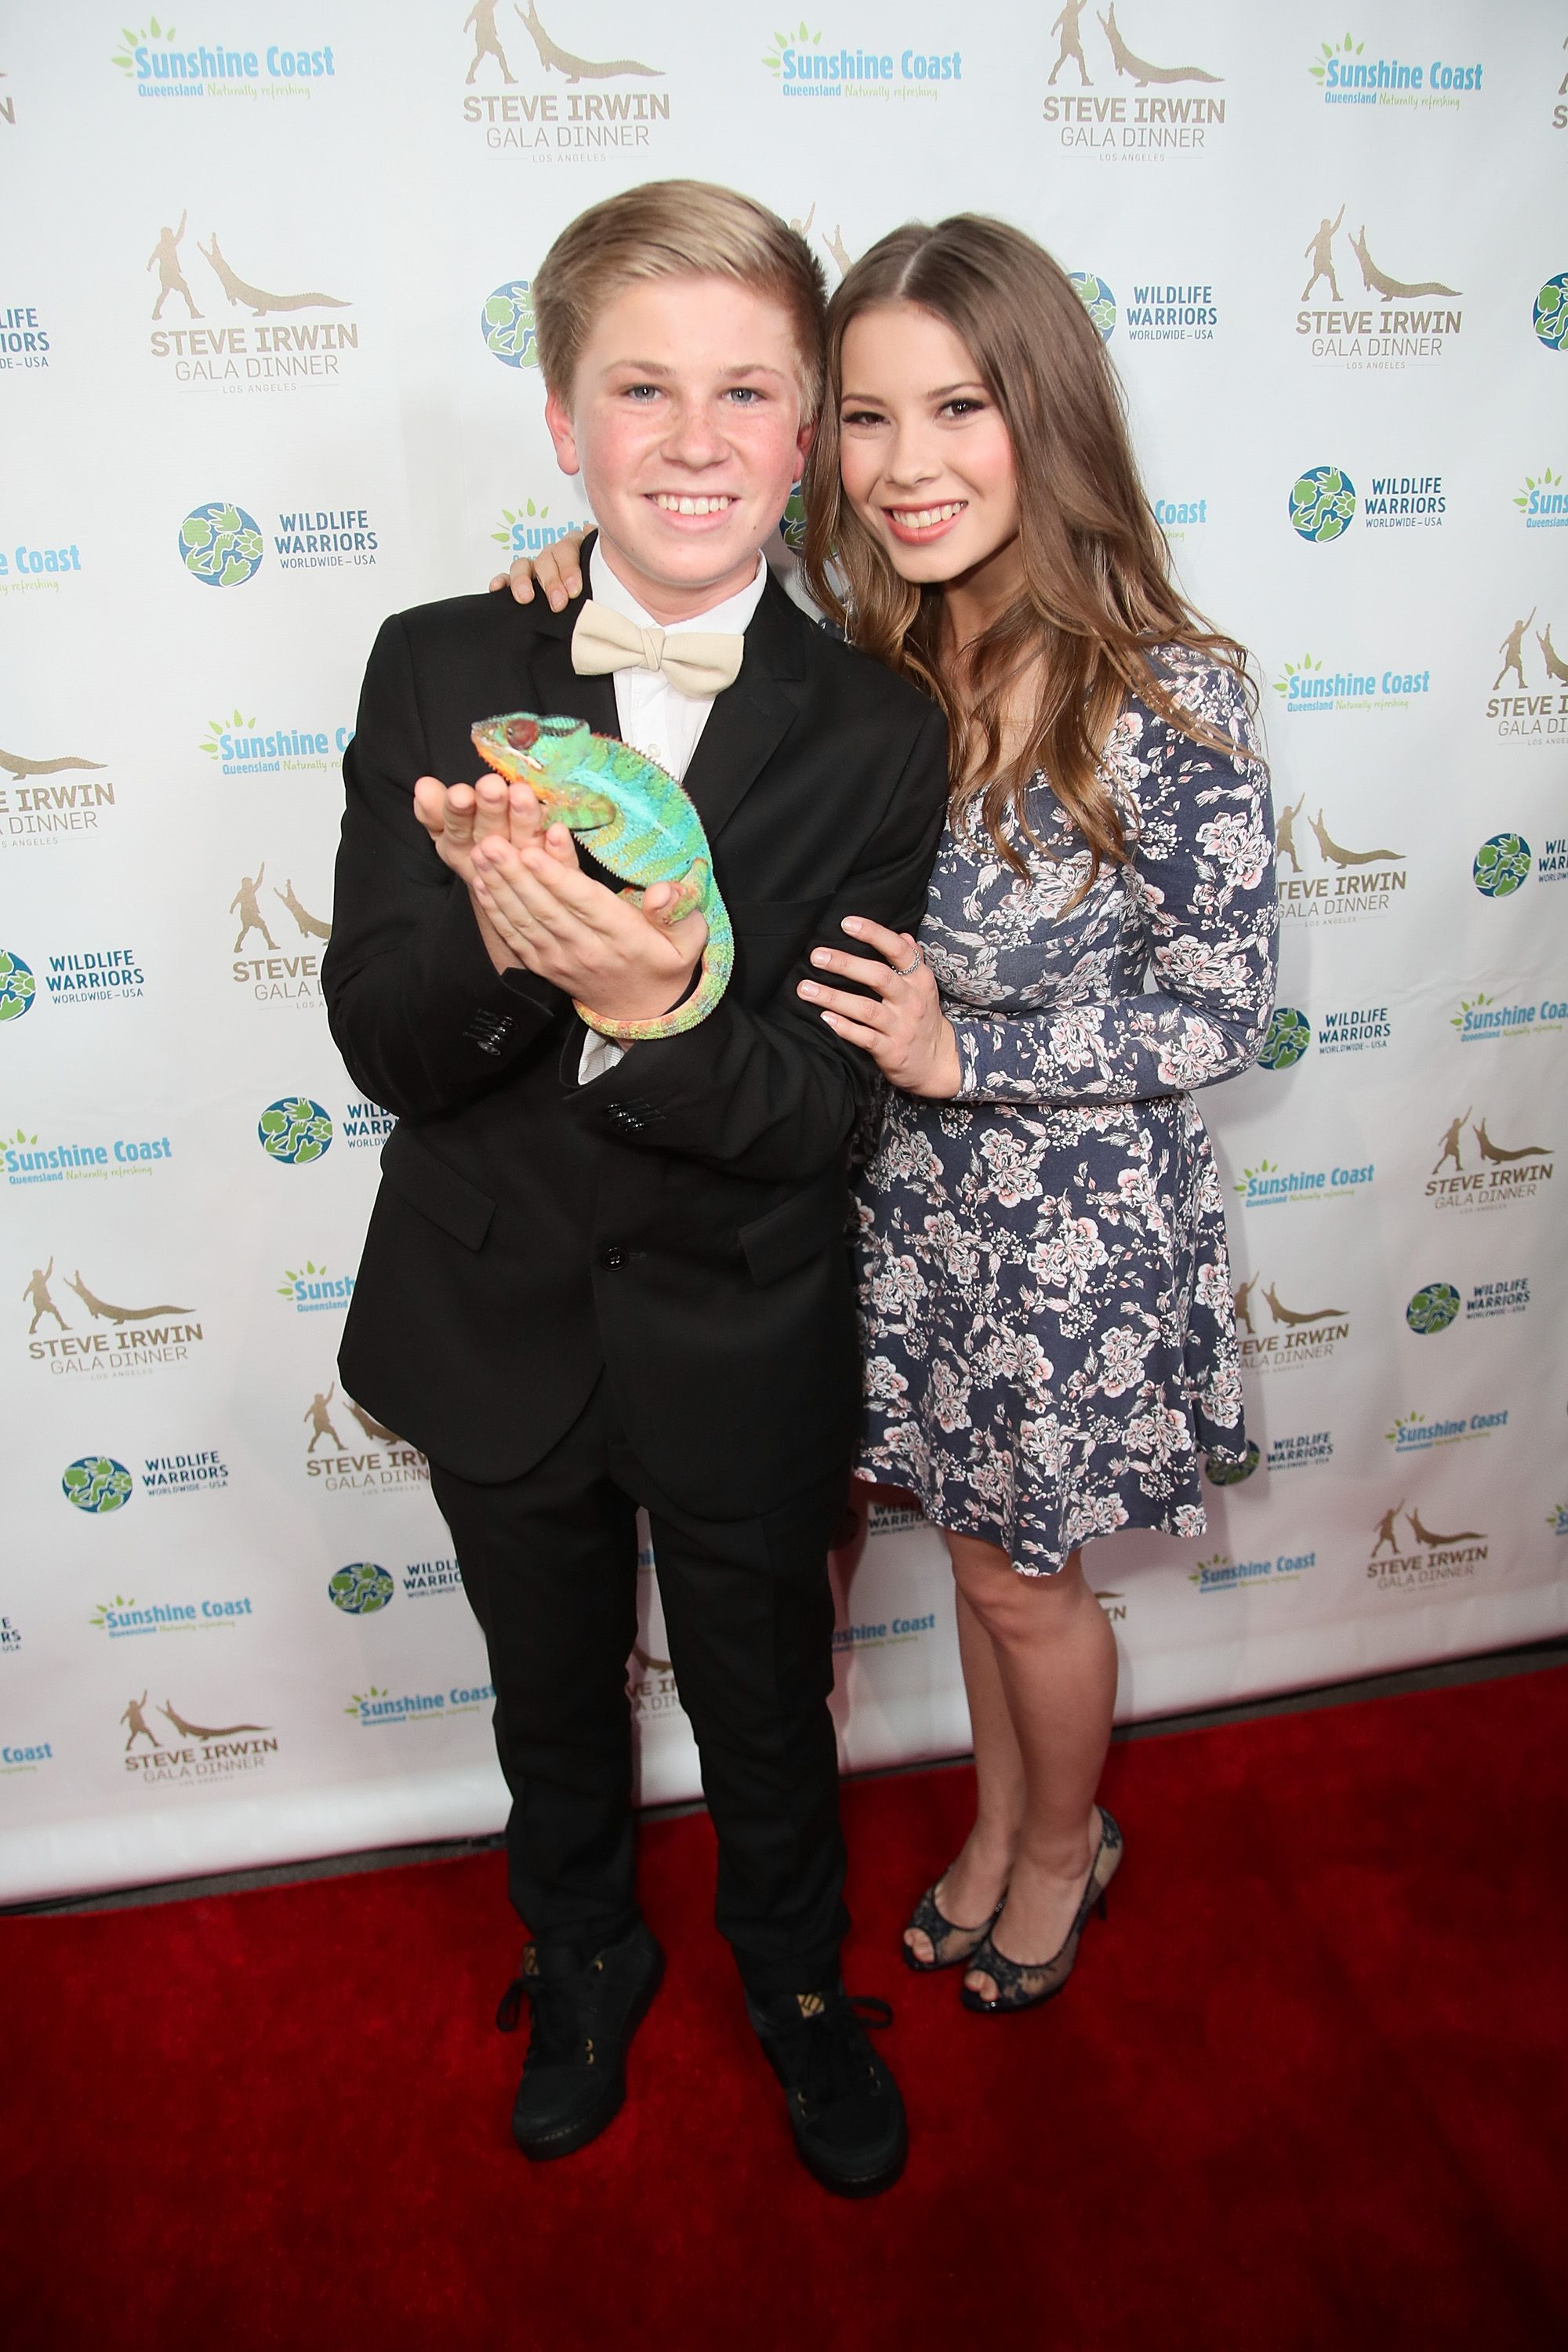 Robert Irwin and Bindi Irwin at the Steve Irwin Gala Dinner at the SLS Hotel at Beverly Hills on May 13, 2017 | Photo: Getty Images